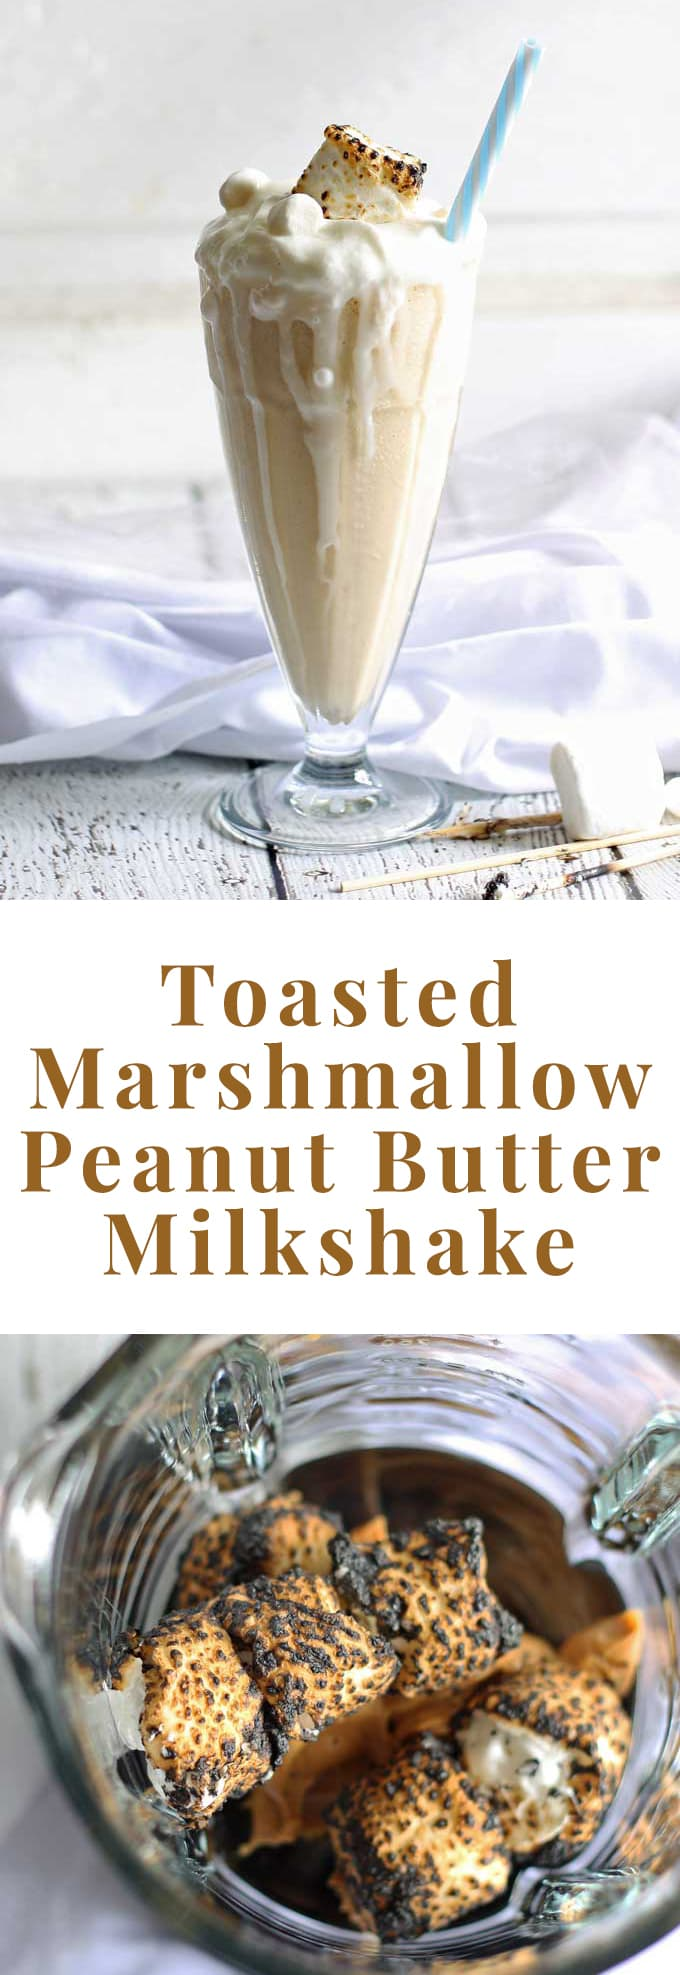 Toasted Marshmallow Peanut Butter Milkshake | honeyandbirch.com